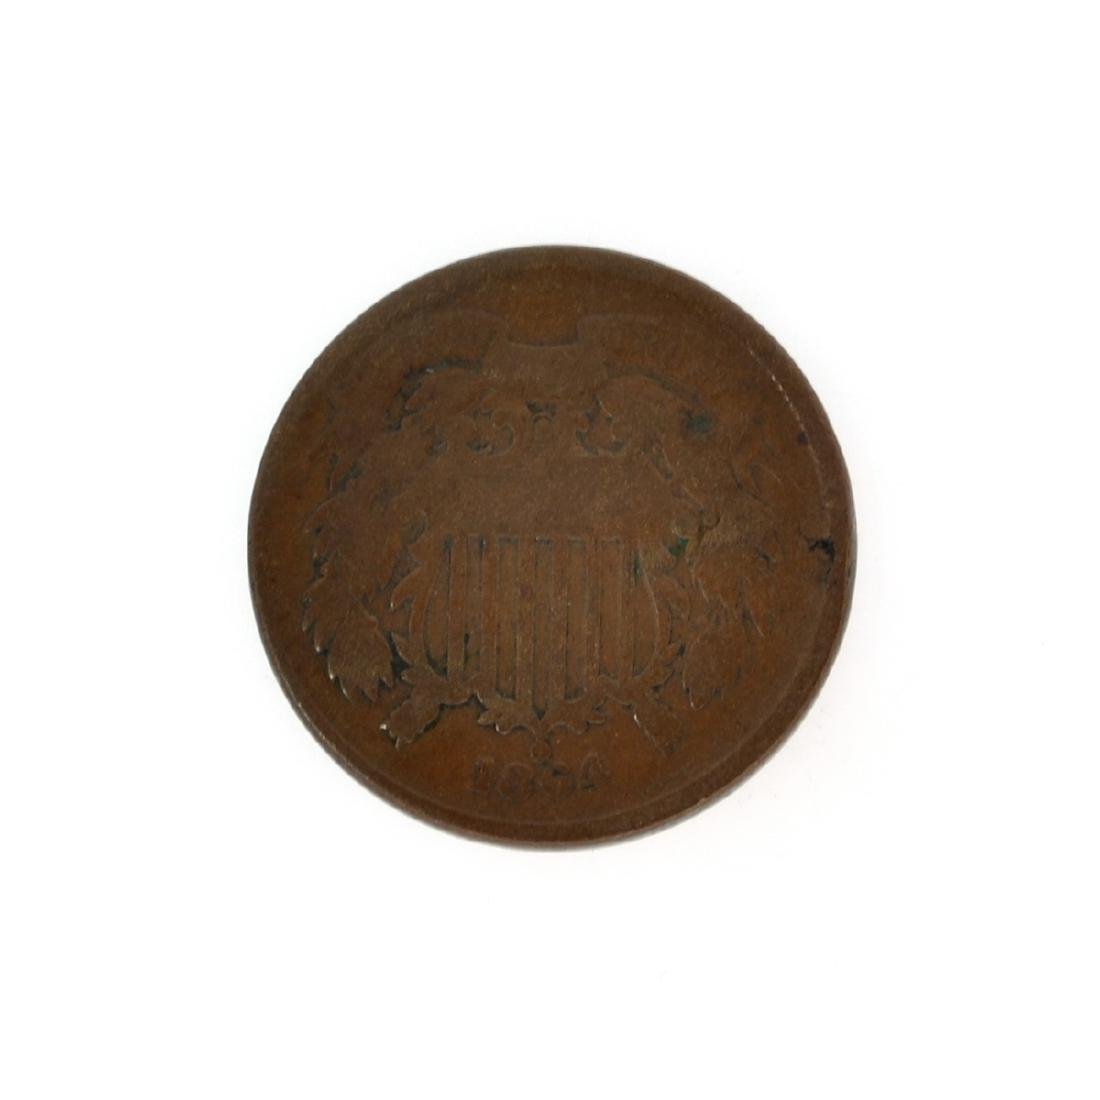 Rare 1864 Two-Cents Piece Coin